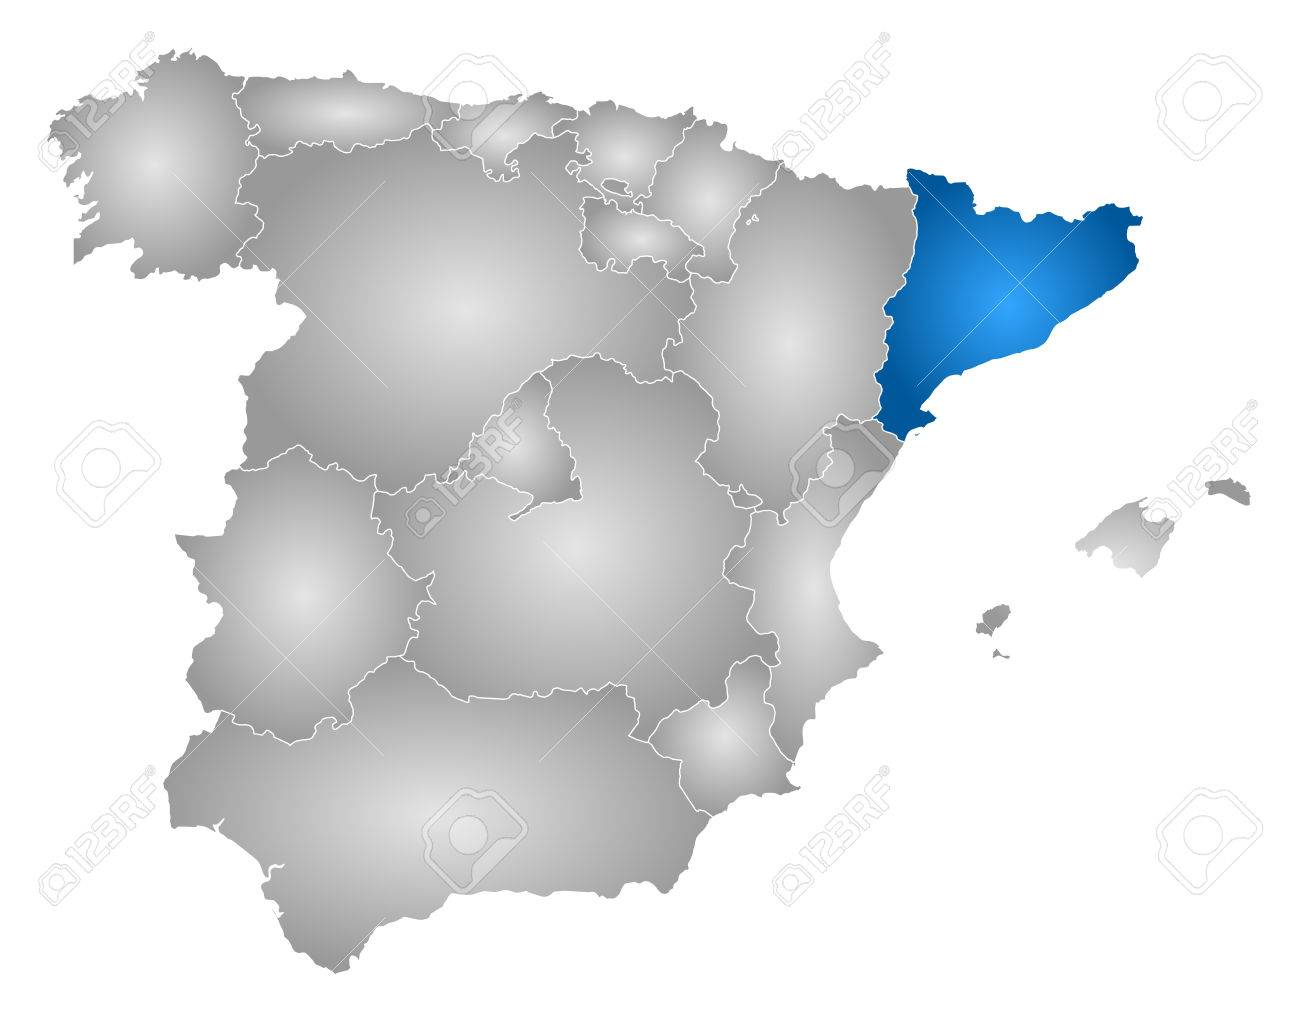 Map Of Spain With Catalonia Highlighted.Map Of Spain With The Provinces Filled With A Radial Gradient